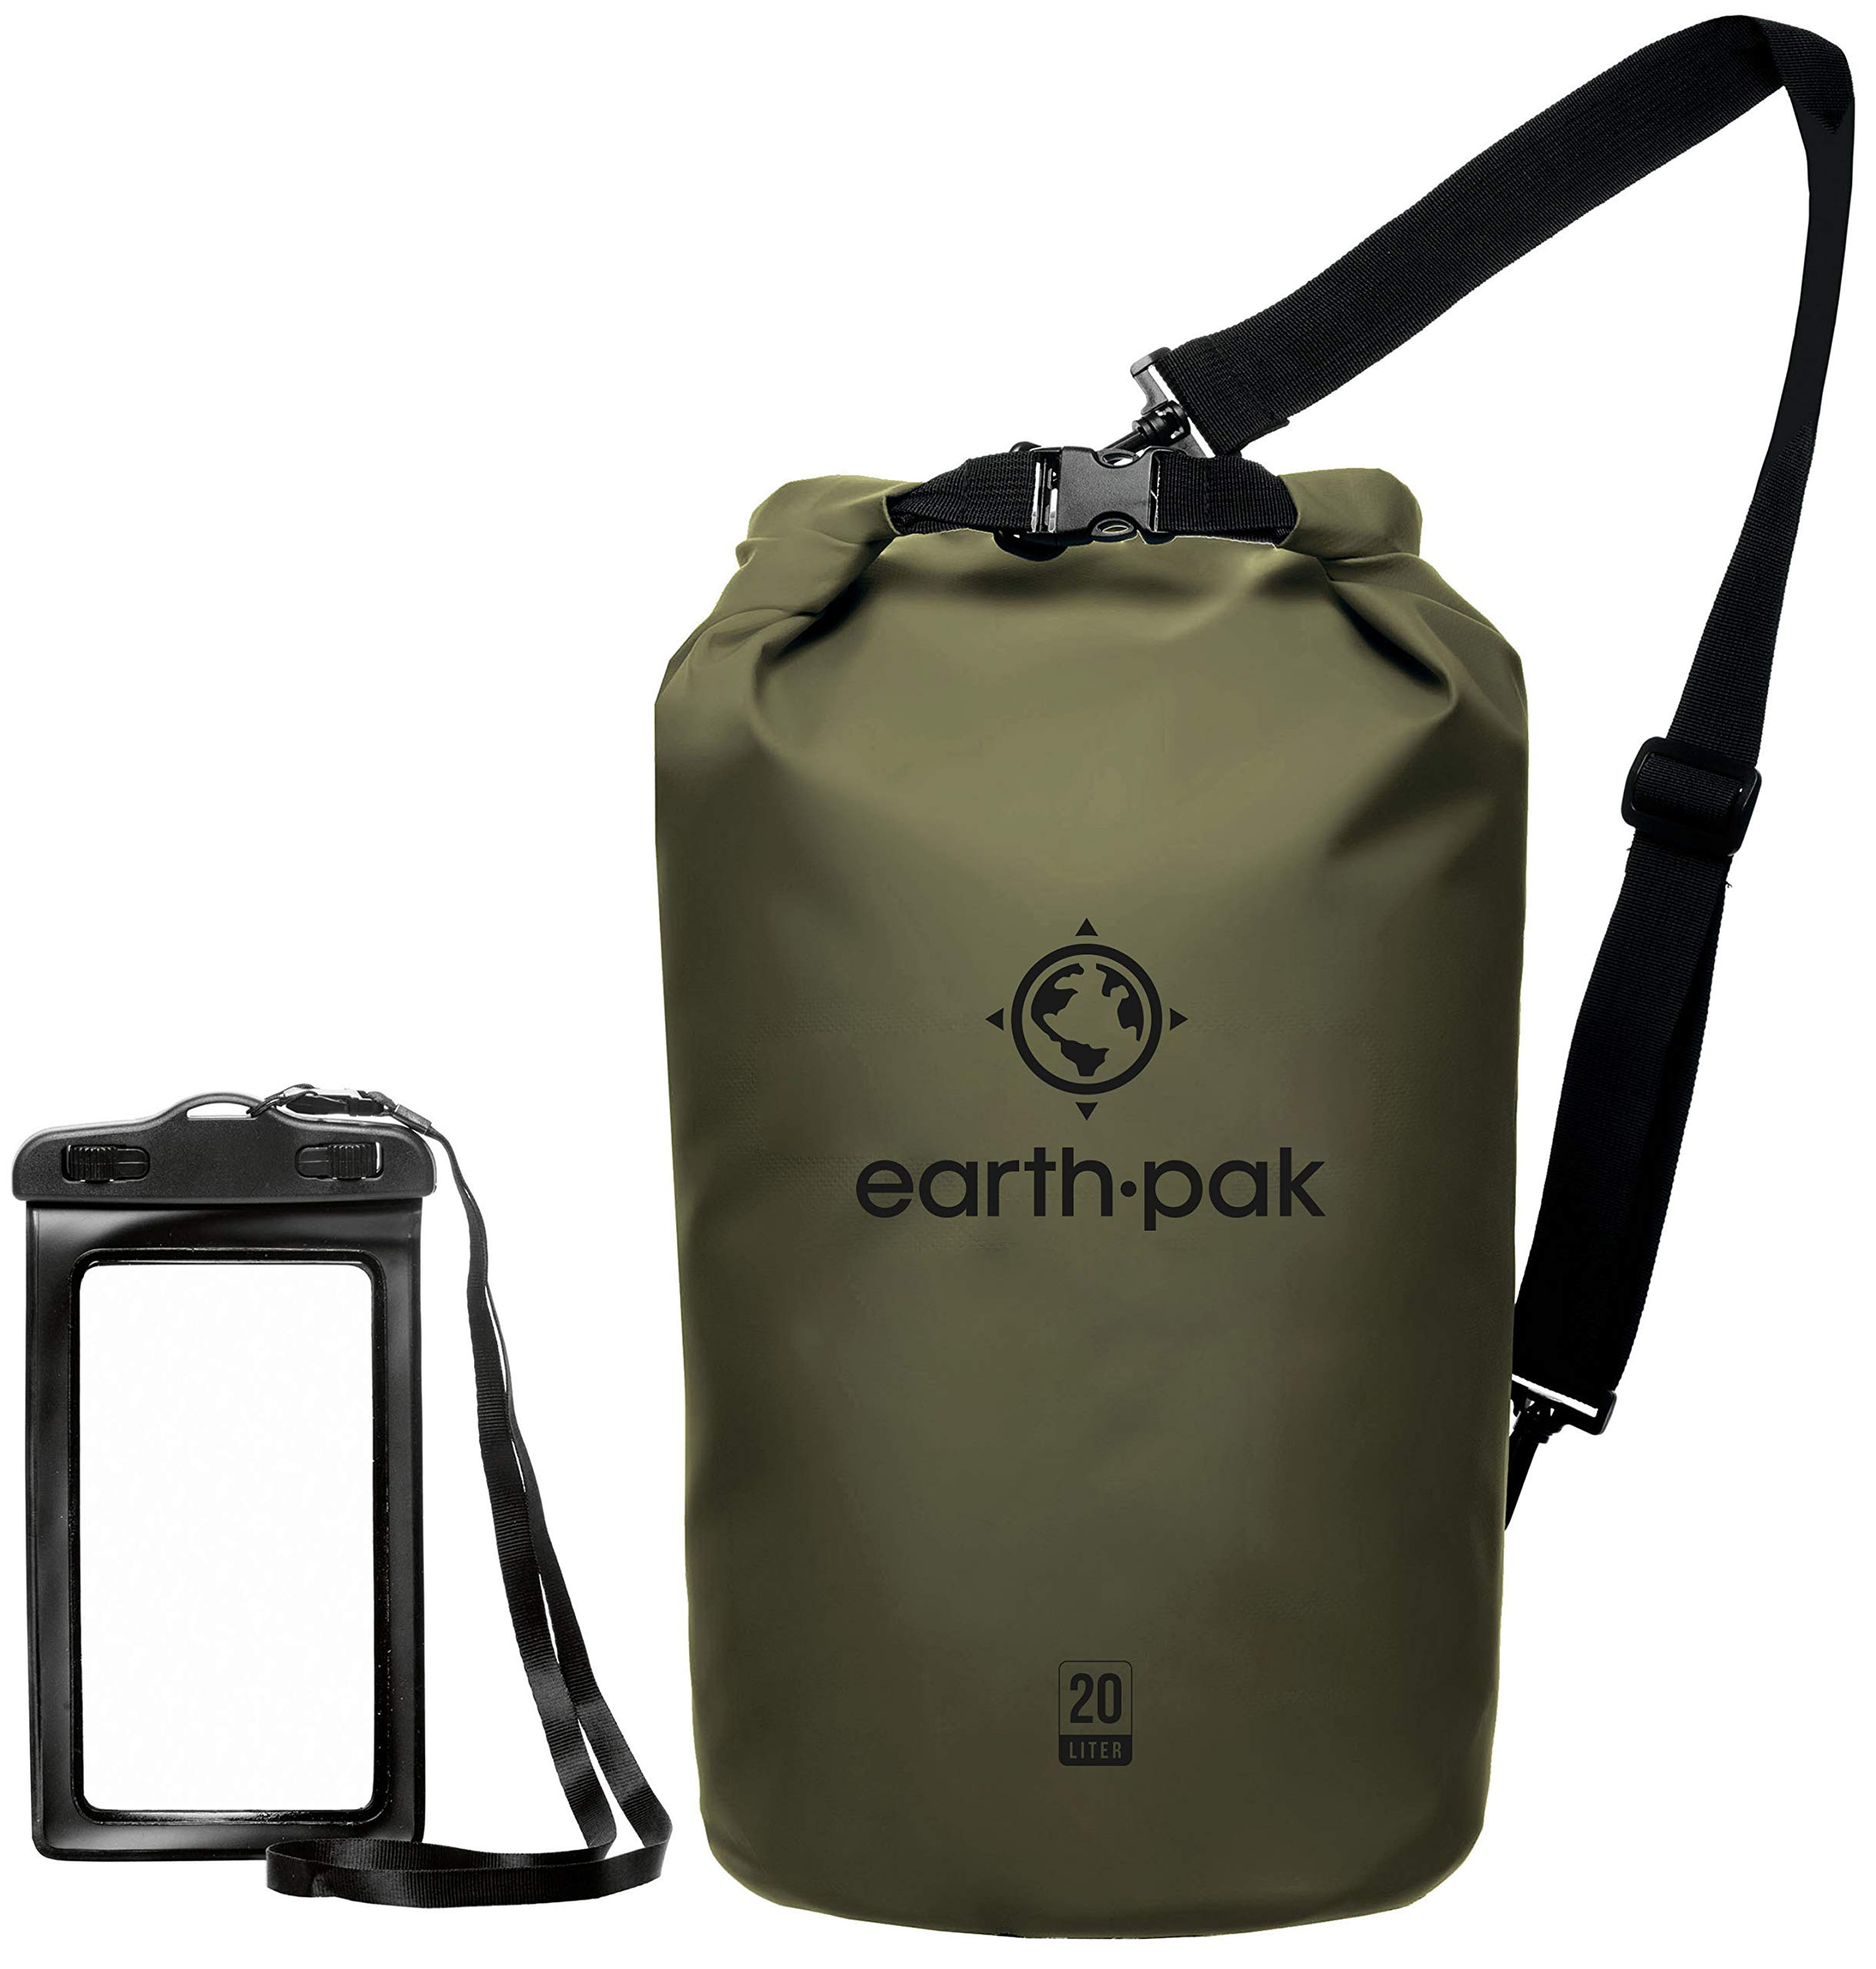 Earth Pak -Waterproof Dry Bag - Roll Top Dry Compression Sack Keeps Gear Dry for Kayaking, Beach, Rafting, Boating, Hiking, Camping and Fishing with Waterproof Phone Case by Earth Pak